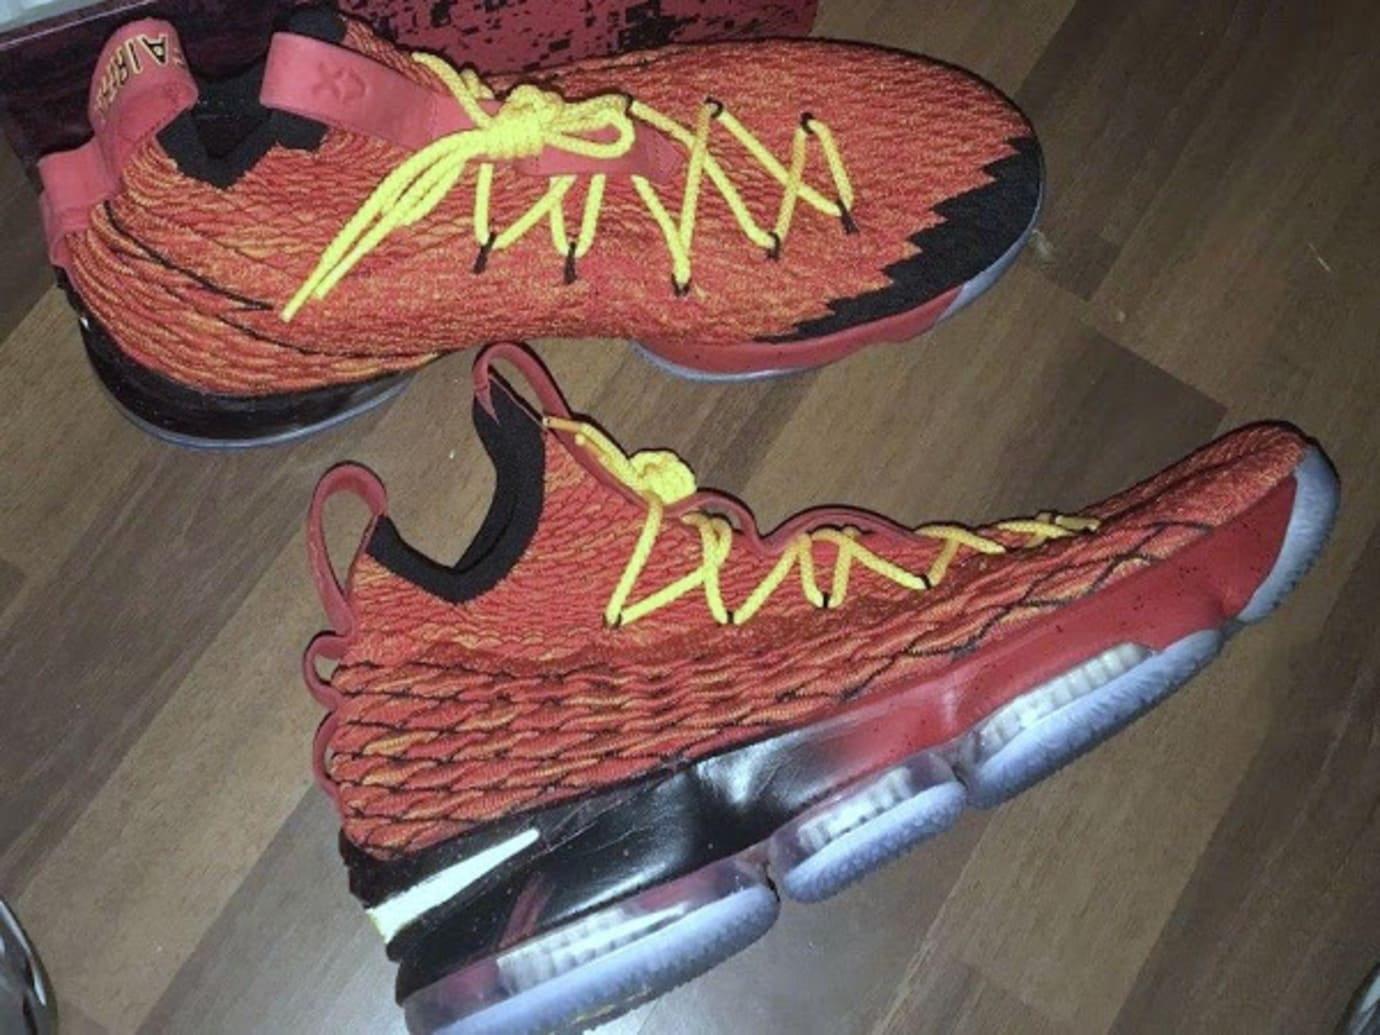 big sale 548fd fca5b Nike LeBron 15 'Fairfax Lions' Player Exclusive Sneakers ...